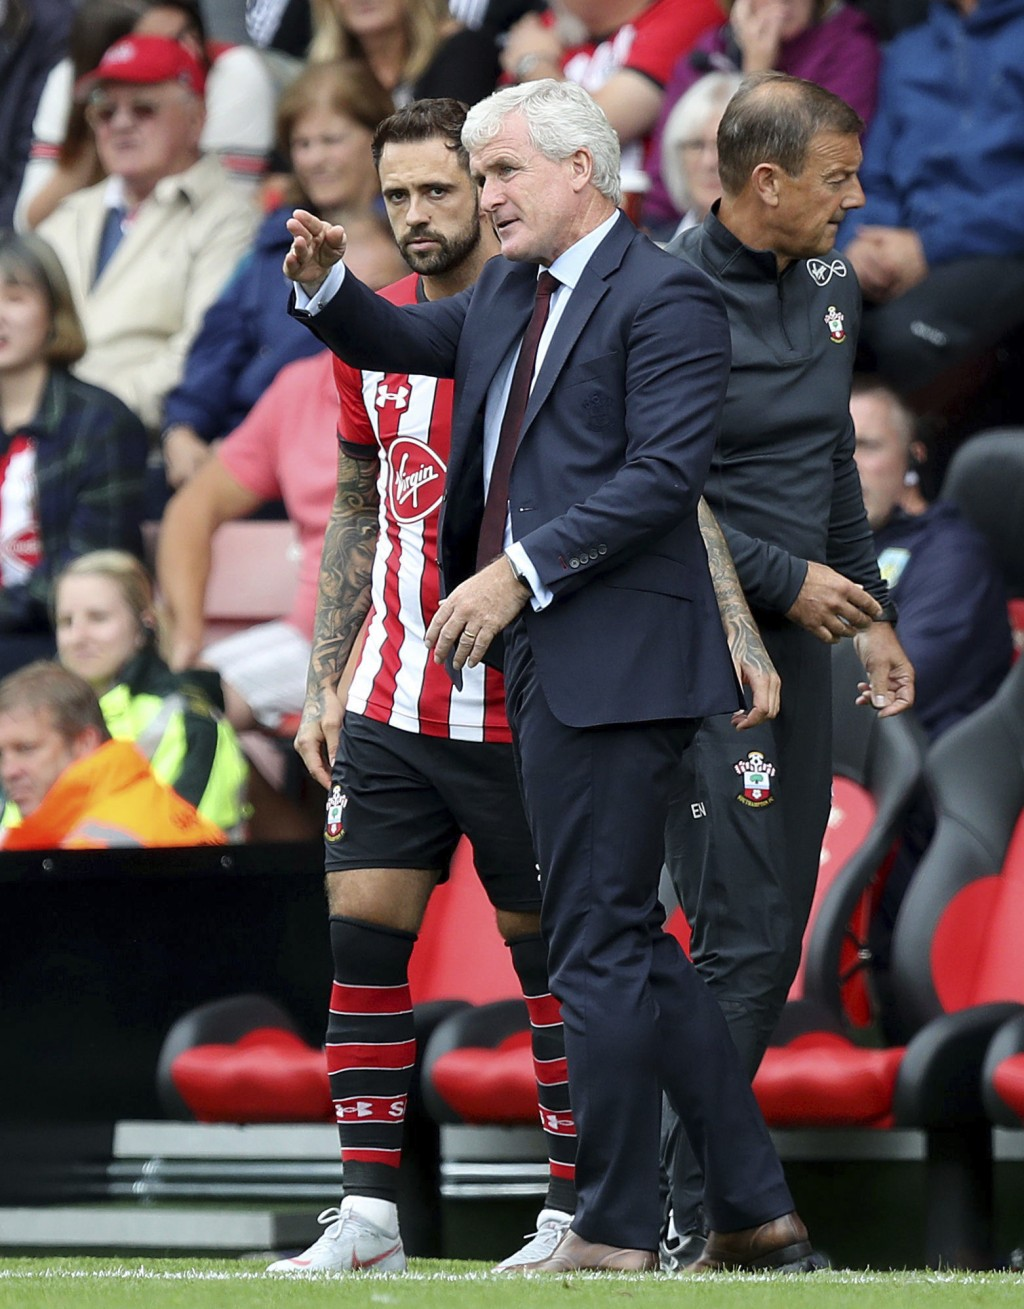 Southampton's Danny Ings takes instructions from manager Mark Hughes as he prepares to enter the game during the Premier League soccer match between S